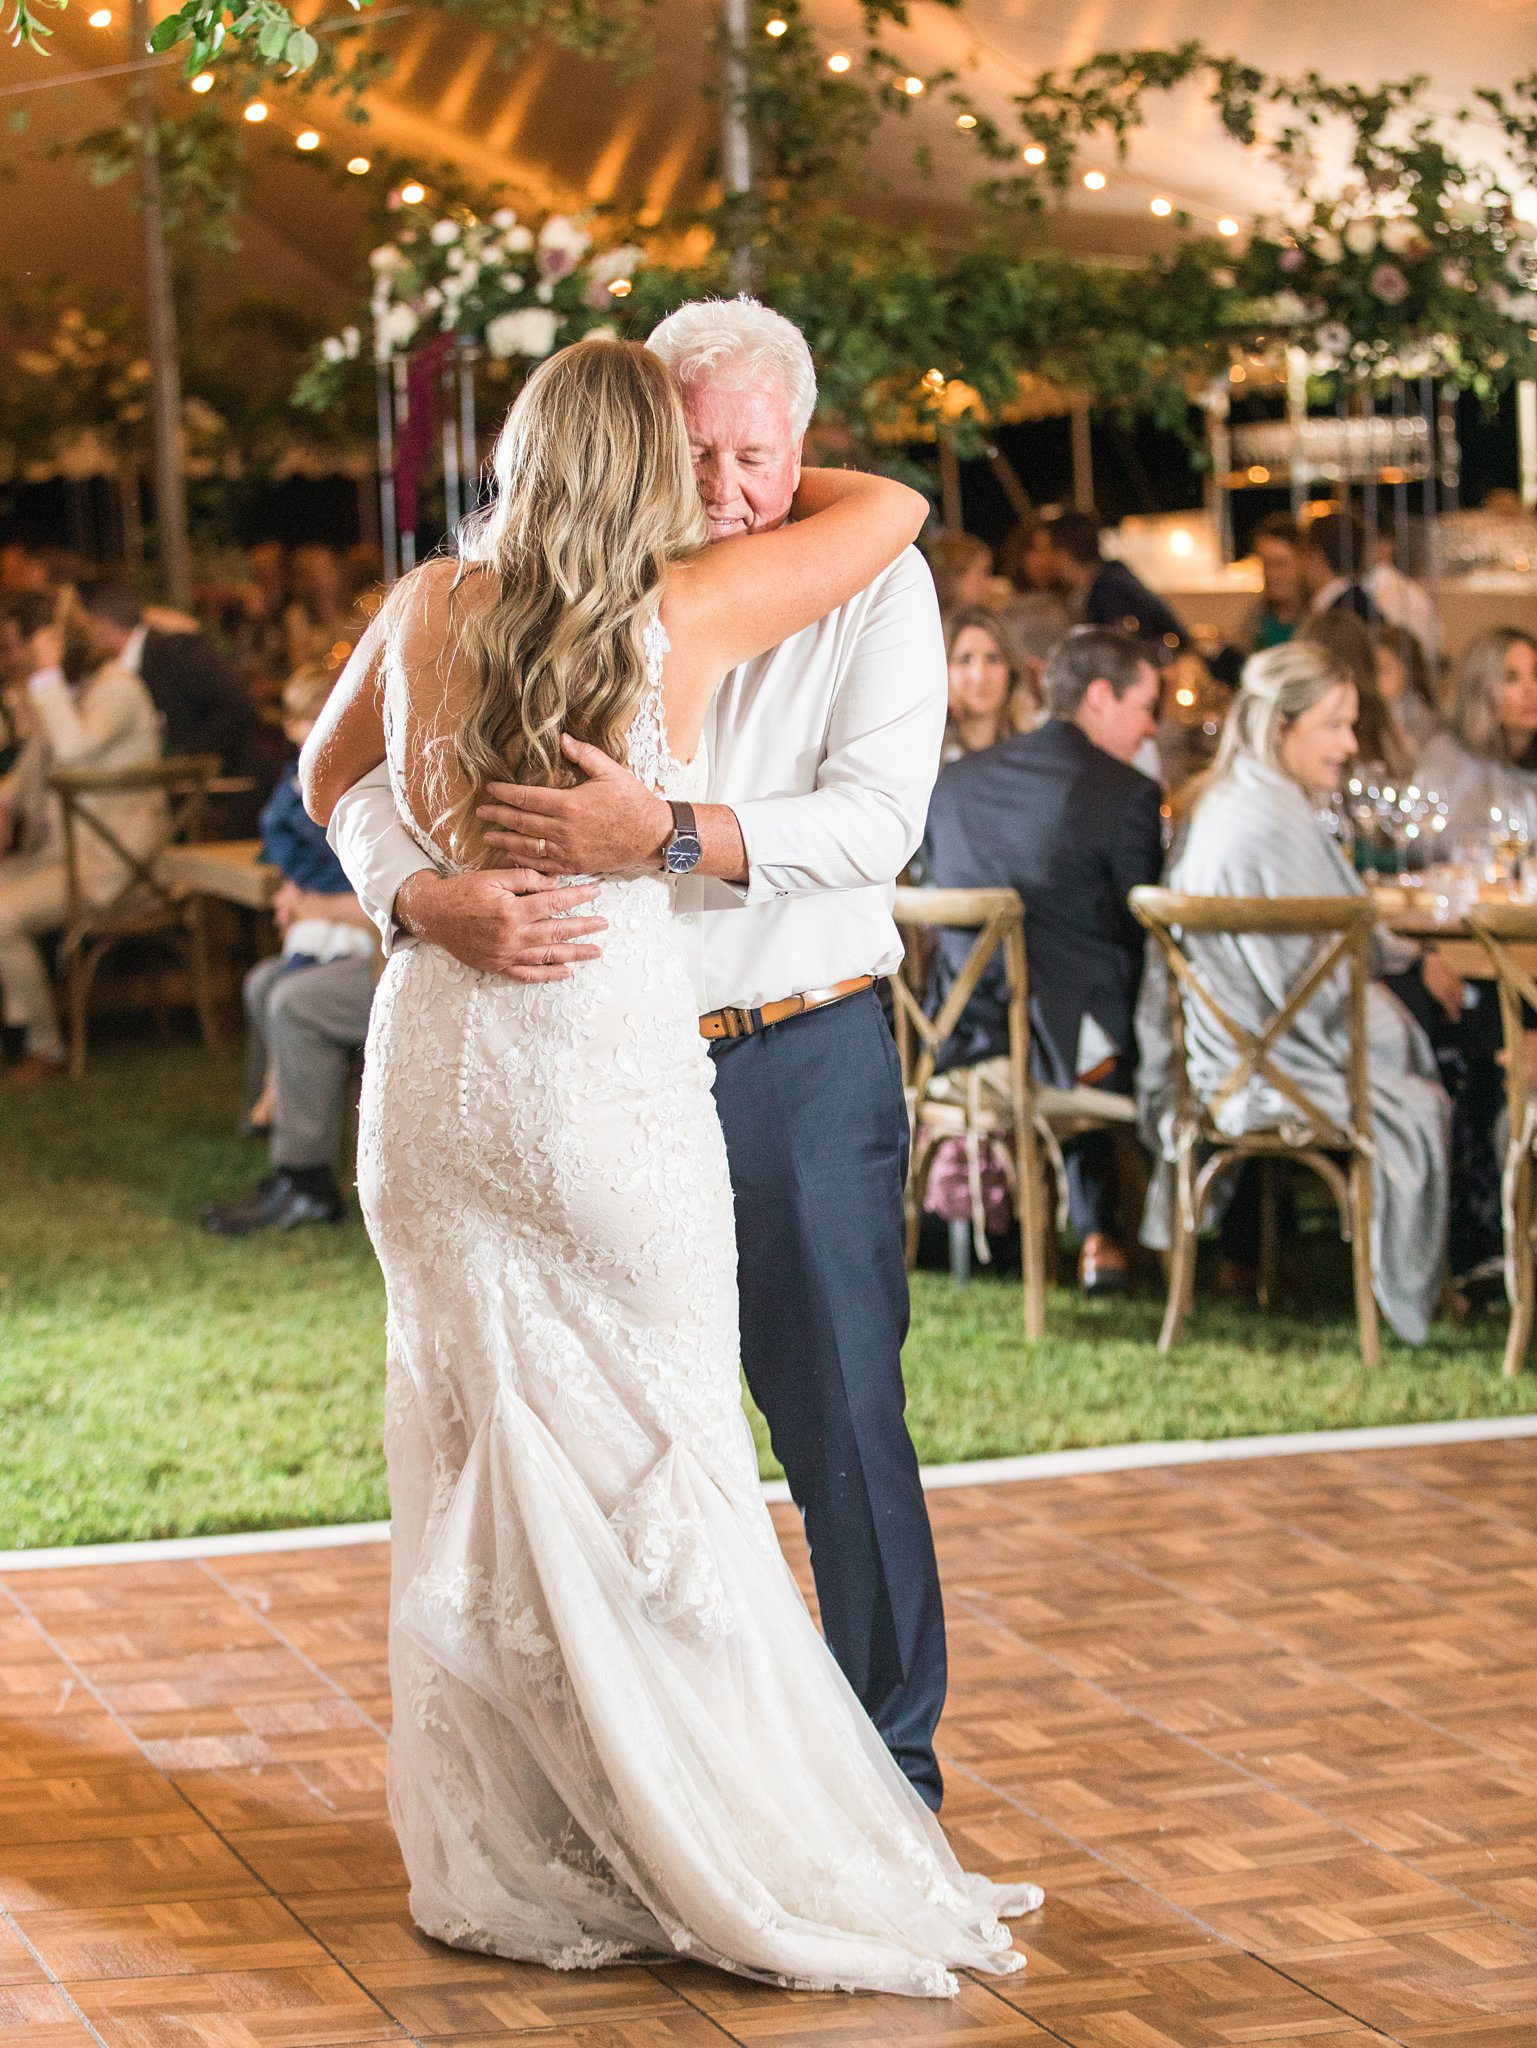 Daddy daughter dance, Private Estate Wedding Photos, Amy Pinder Photography